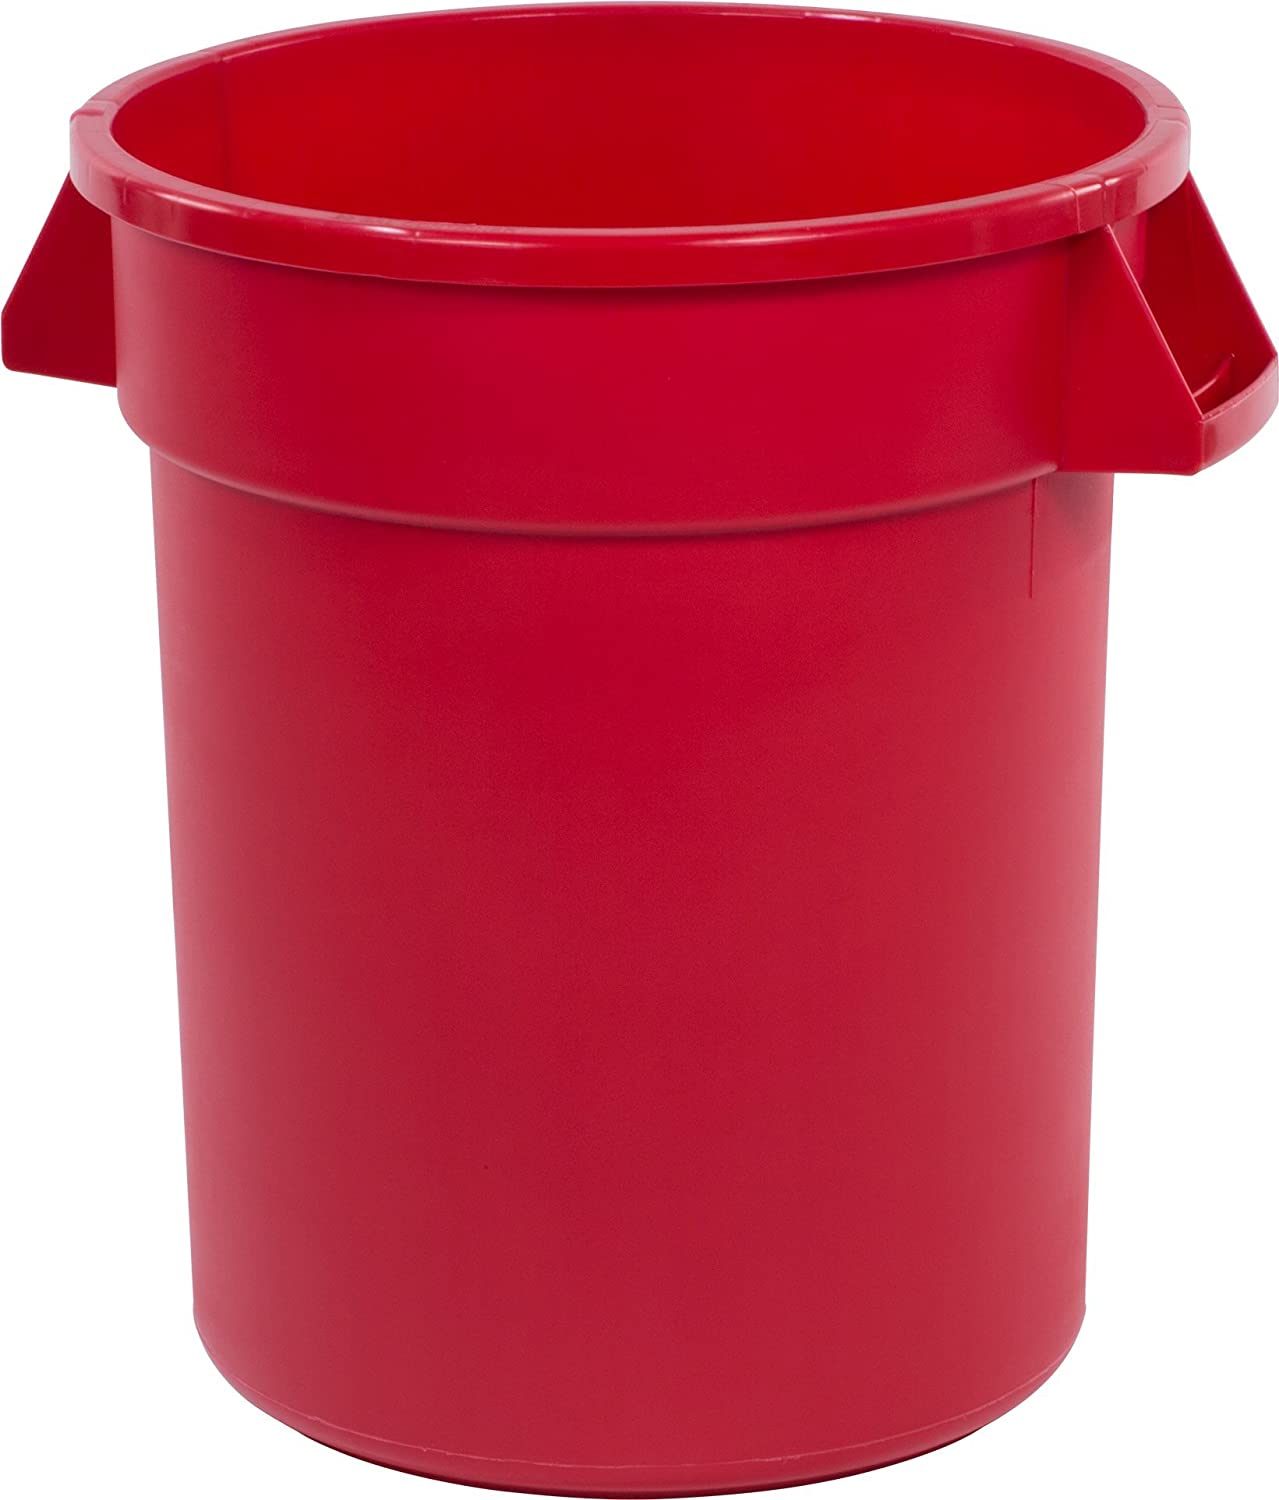 Carlisle 34102005 Bronco Round Waste Container Only, 20 Gallon, Red